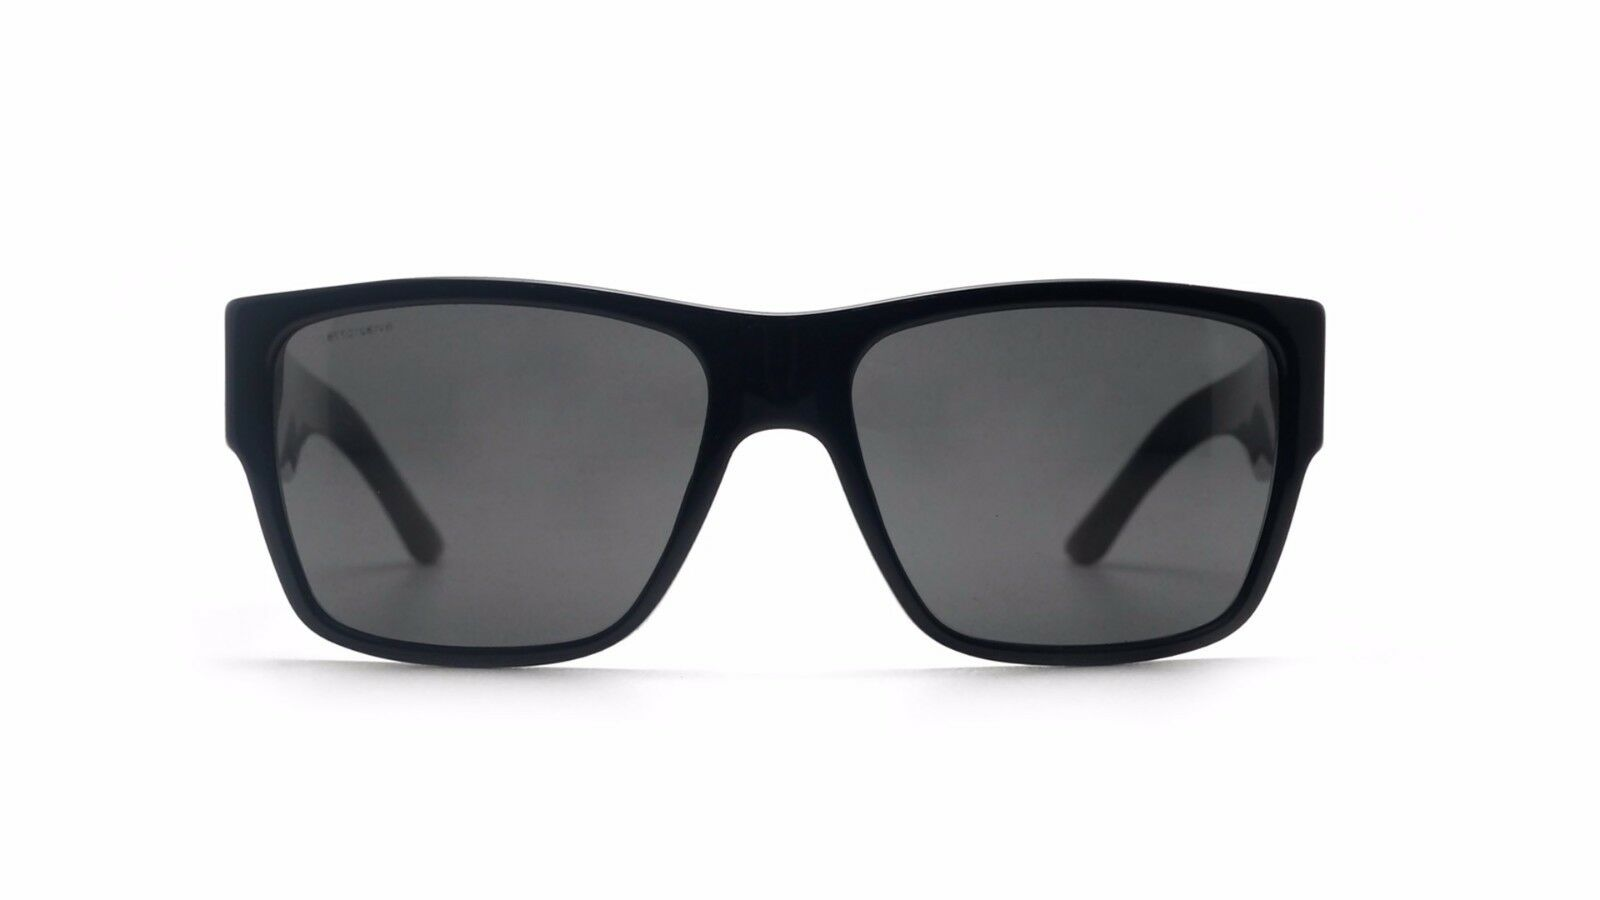 ee1985a3d4d4 VERSACE VE4296 Gb1 87 59mm Grey UV Lens Black Frame Men s Sunglasses ...